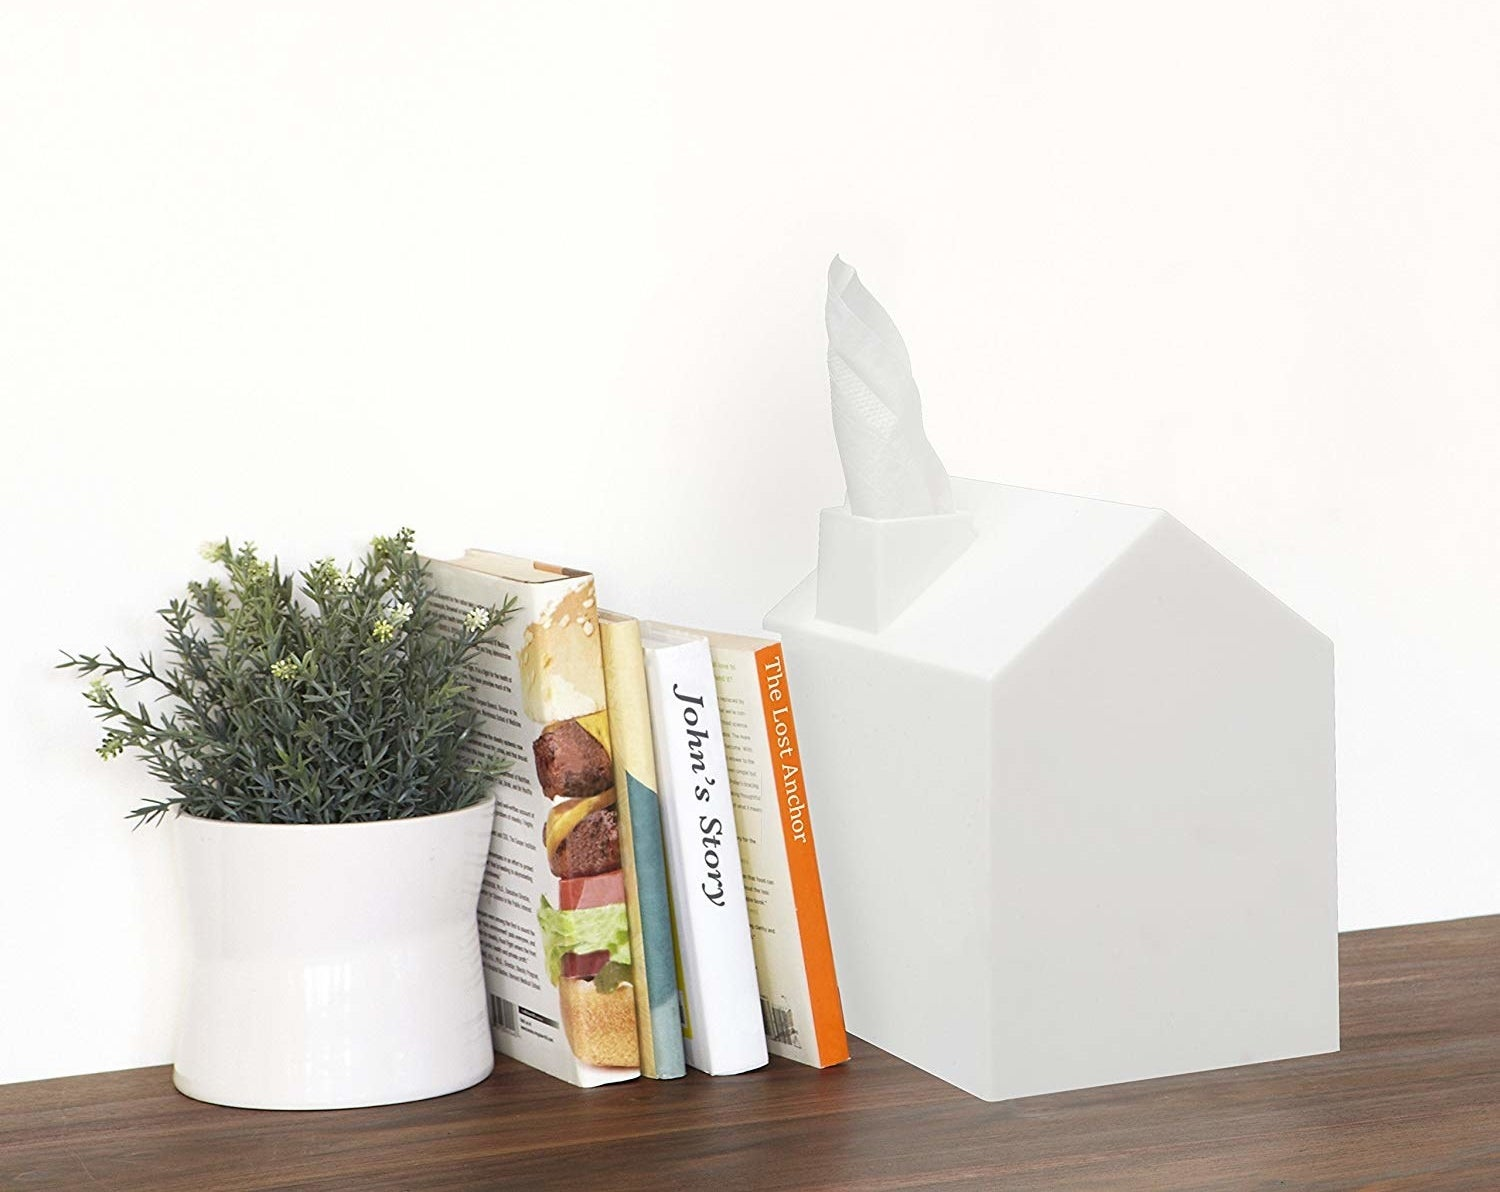 the white house-shaped tissue box